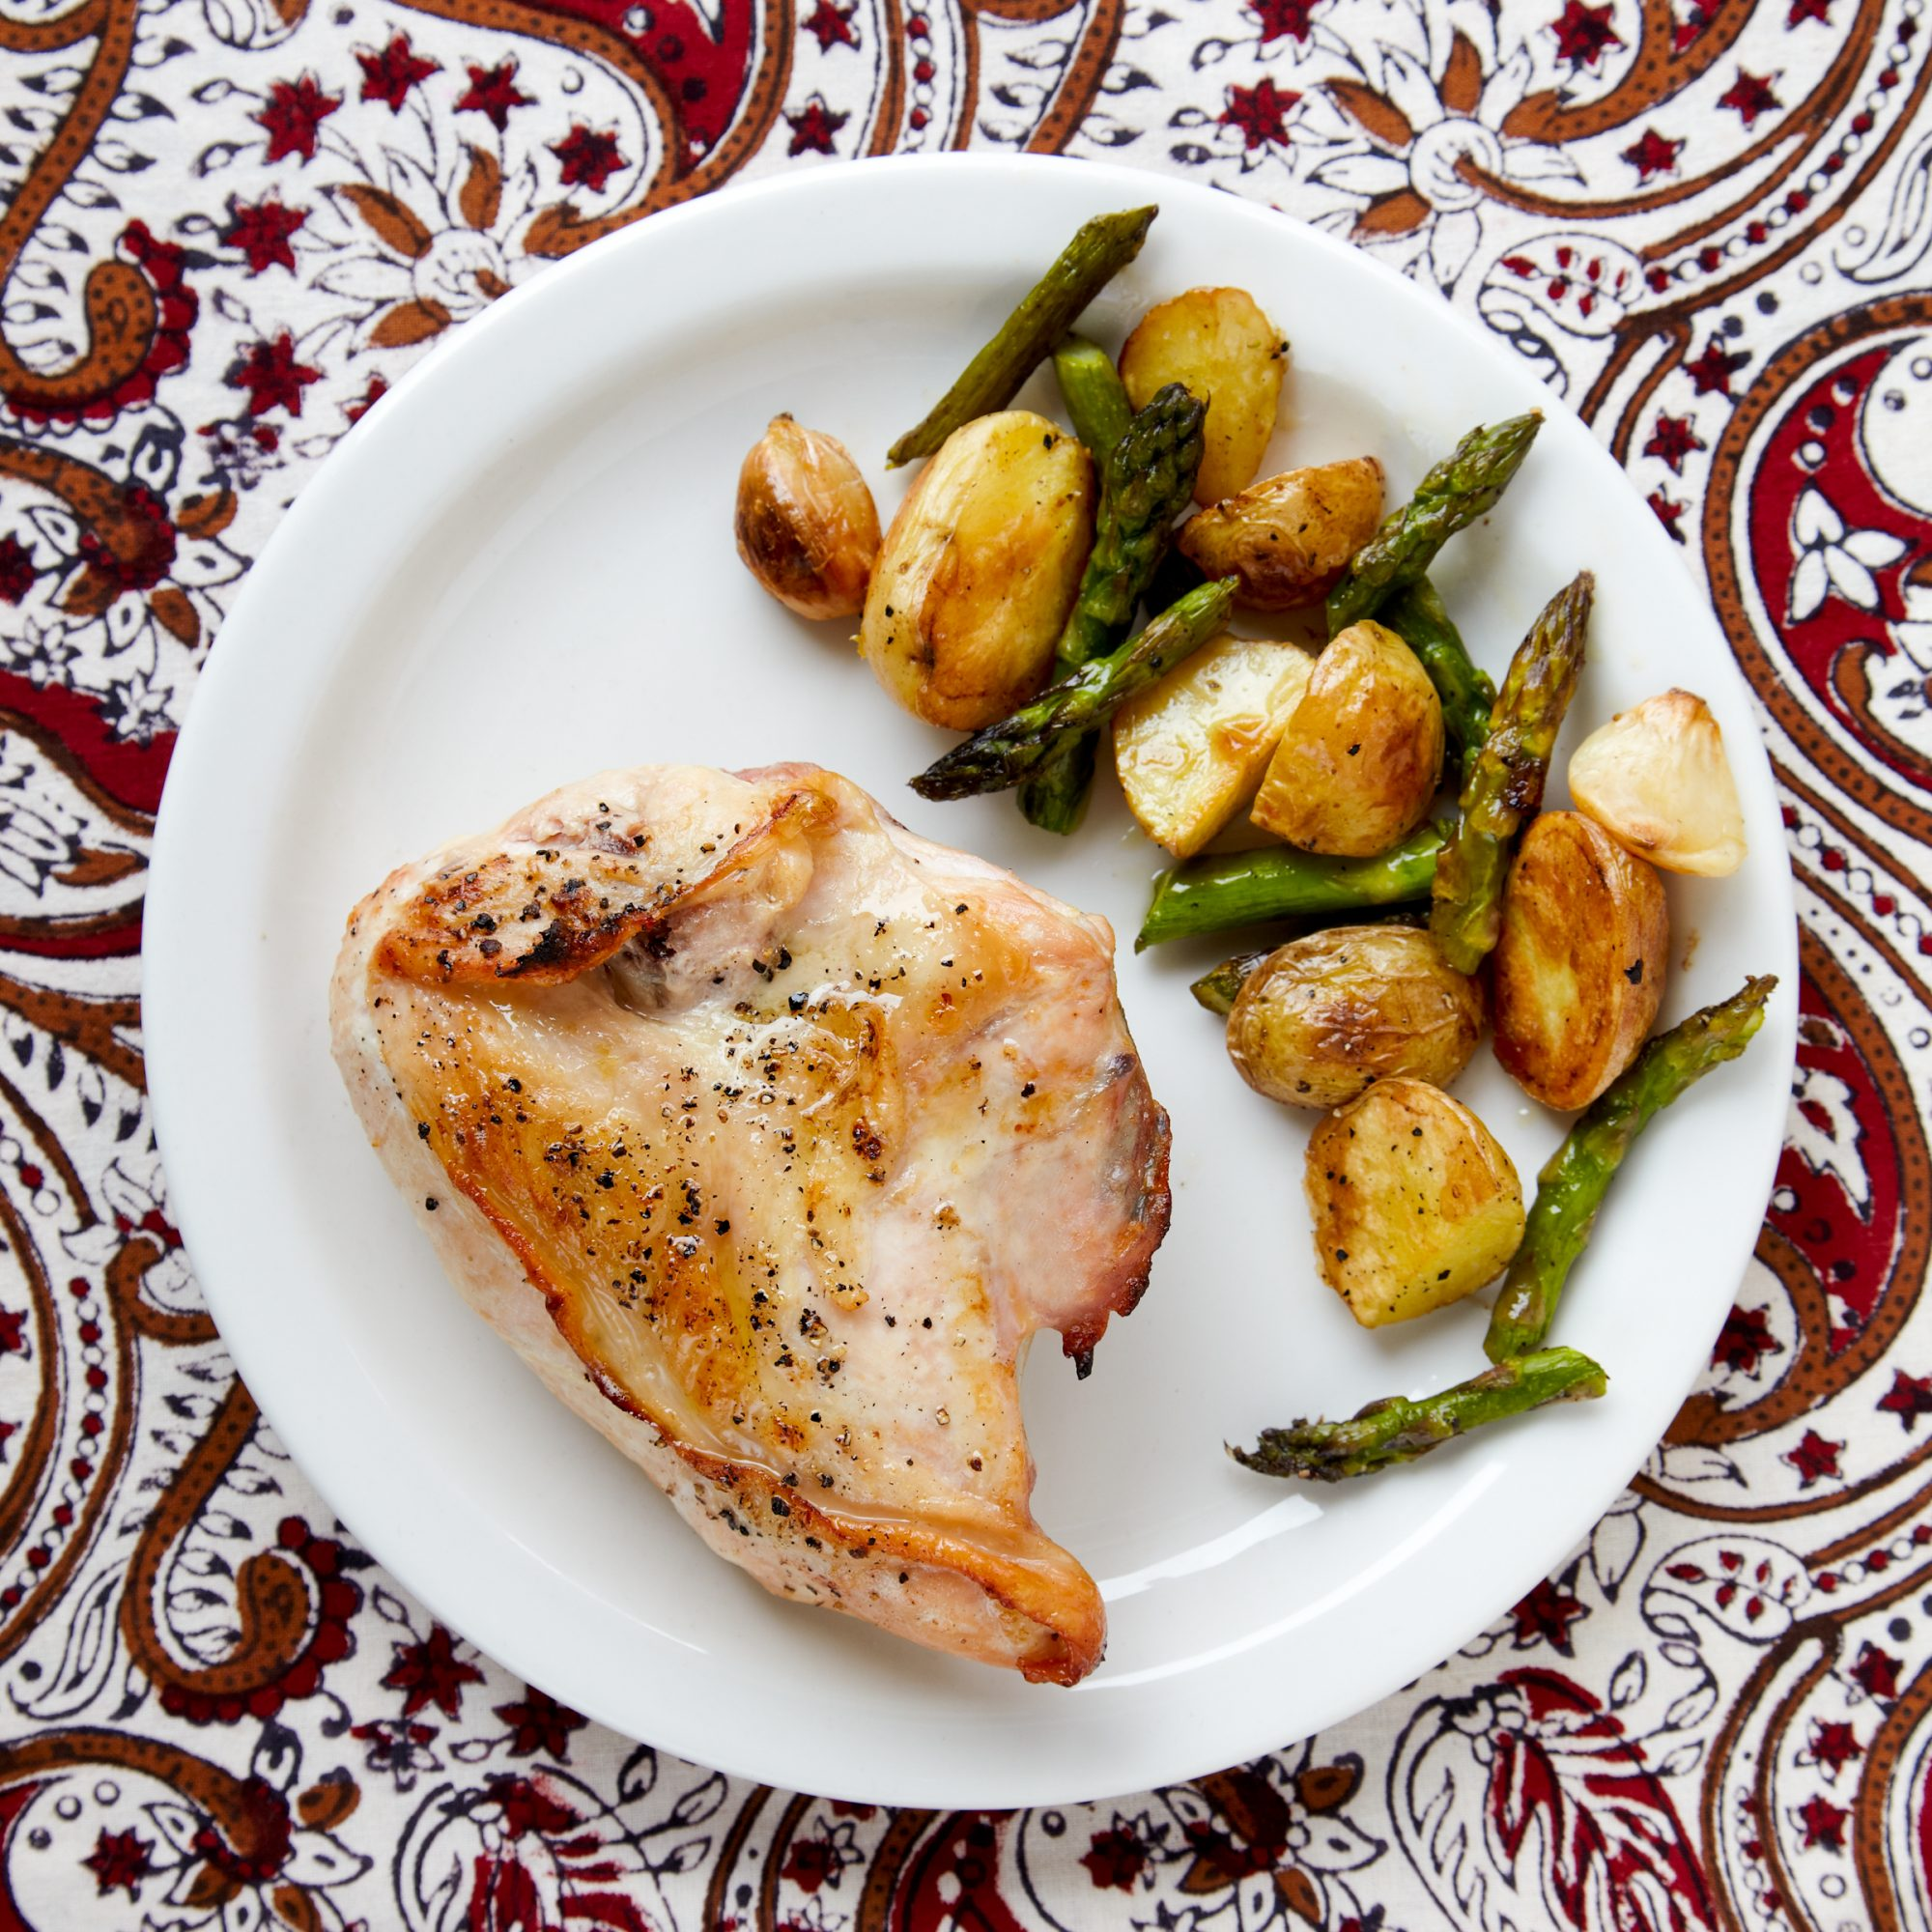 original-roasted-chicken-qfs-r.jpg